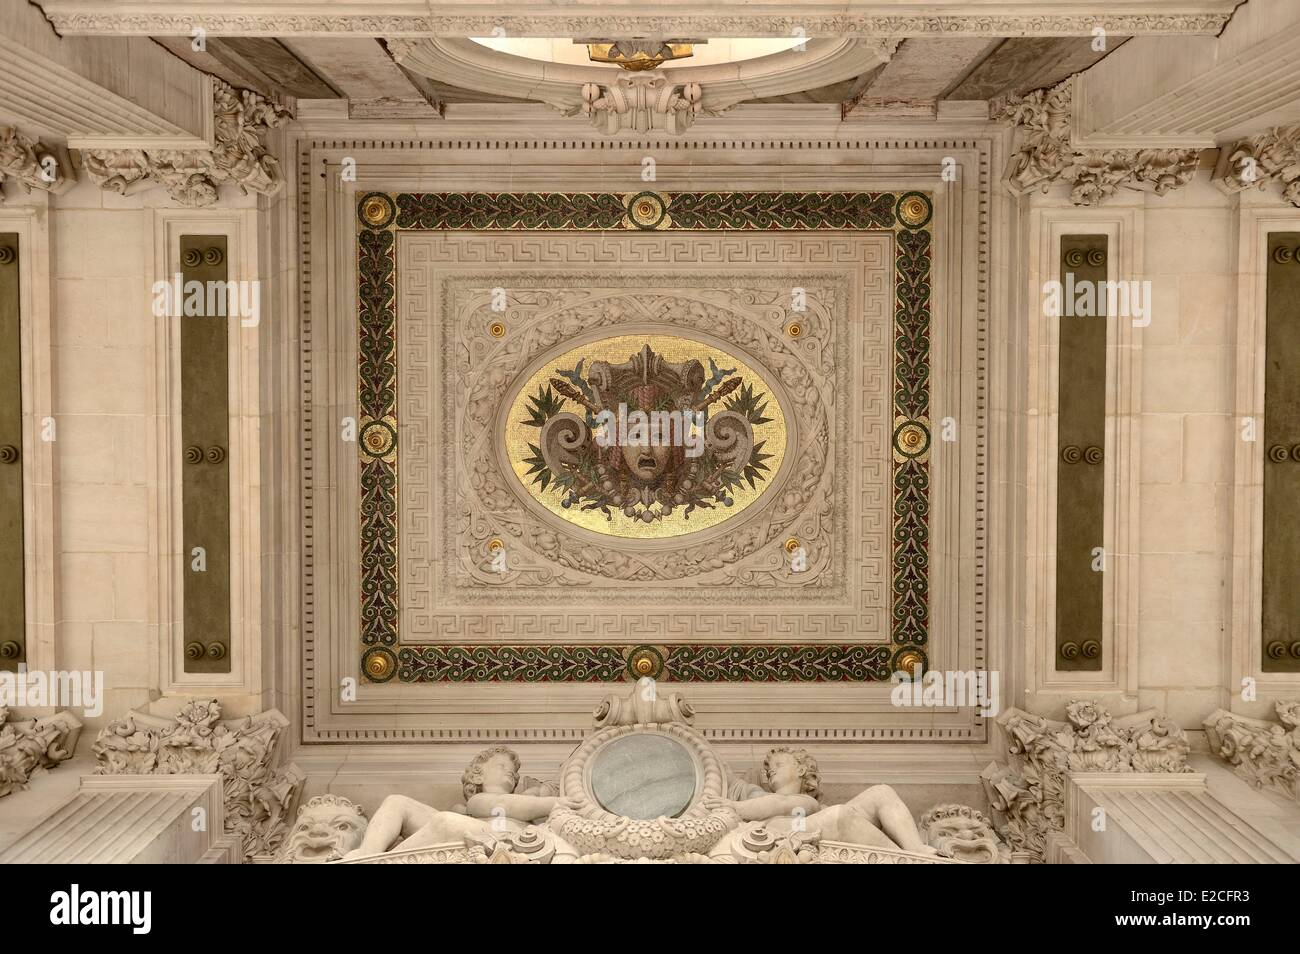 France, Paris, Garnier Opera, detail of the ceiling of the terrace from the South Facade - Stock Image